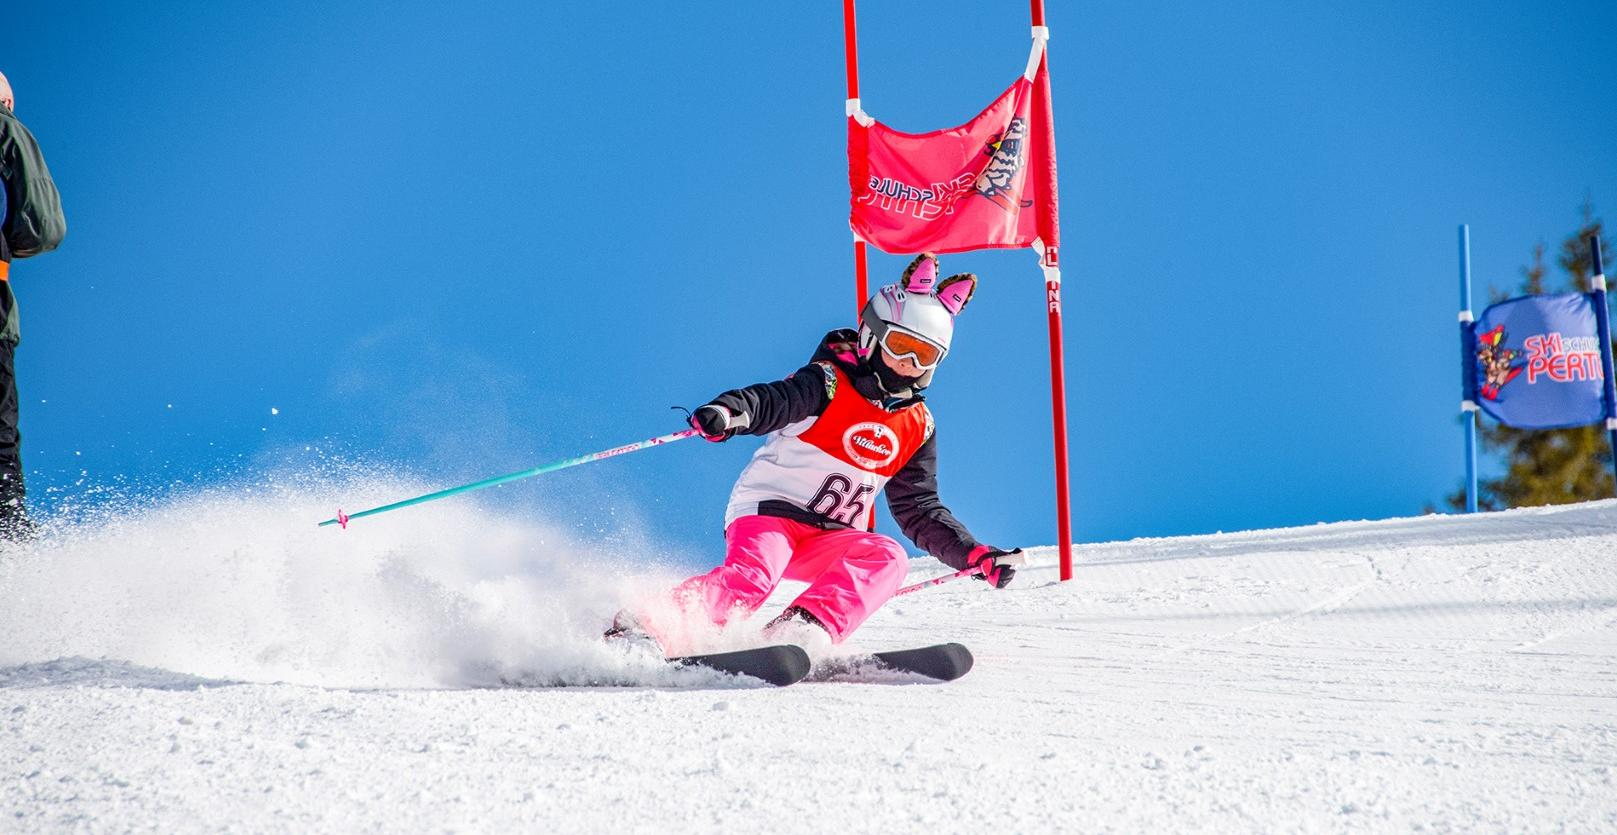 BOOK YOUR SKI COURSE NOW